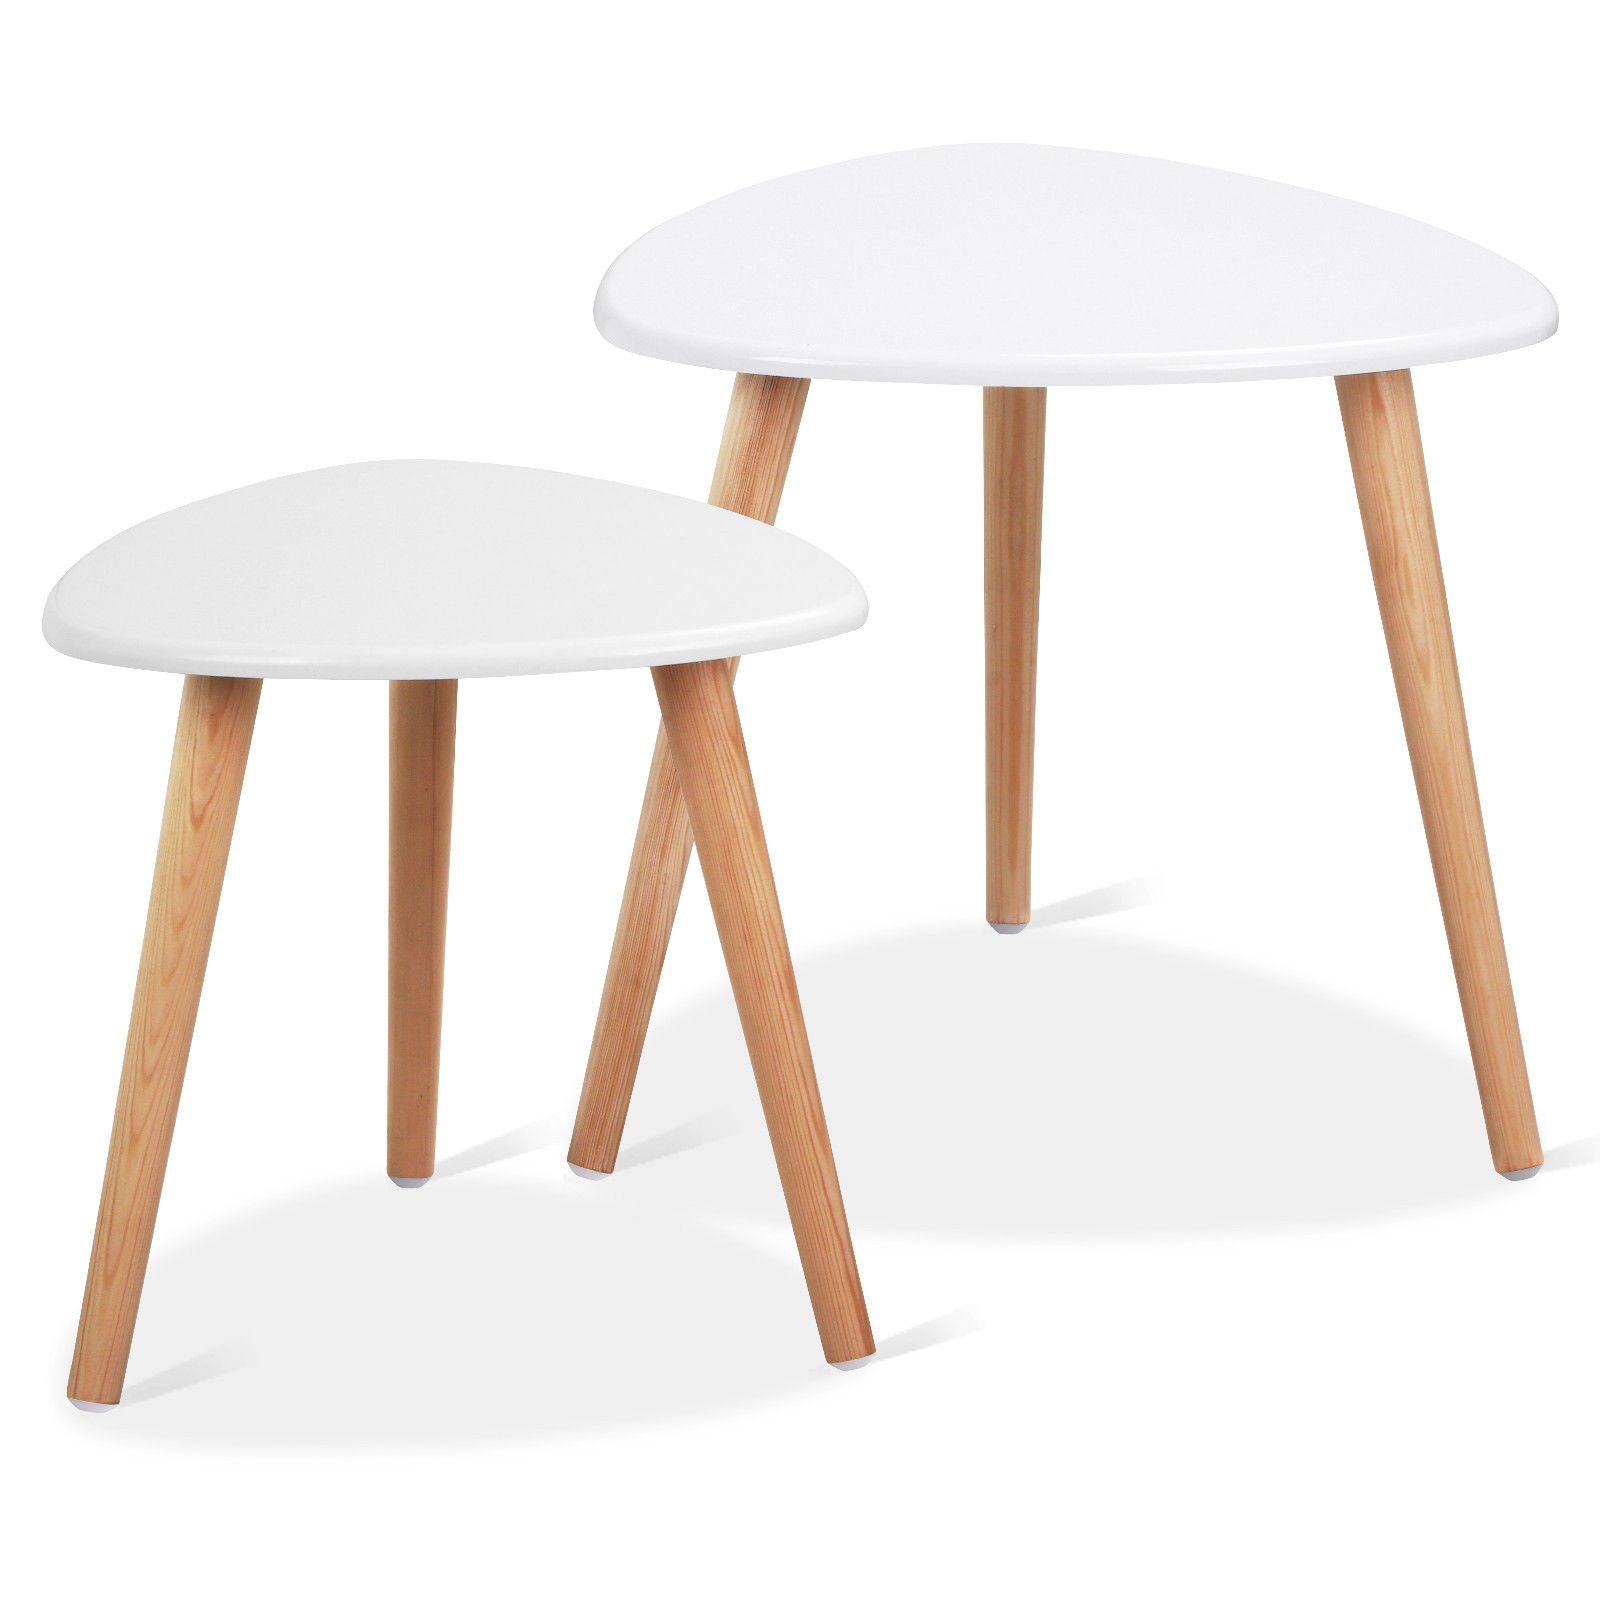 Heaven Tvcz Set of 2 White Wood Nesting Accent Foot Tables Contemporary Sofa Area Coffee Tea End Table Living Room